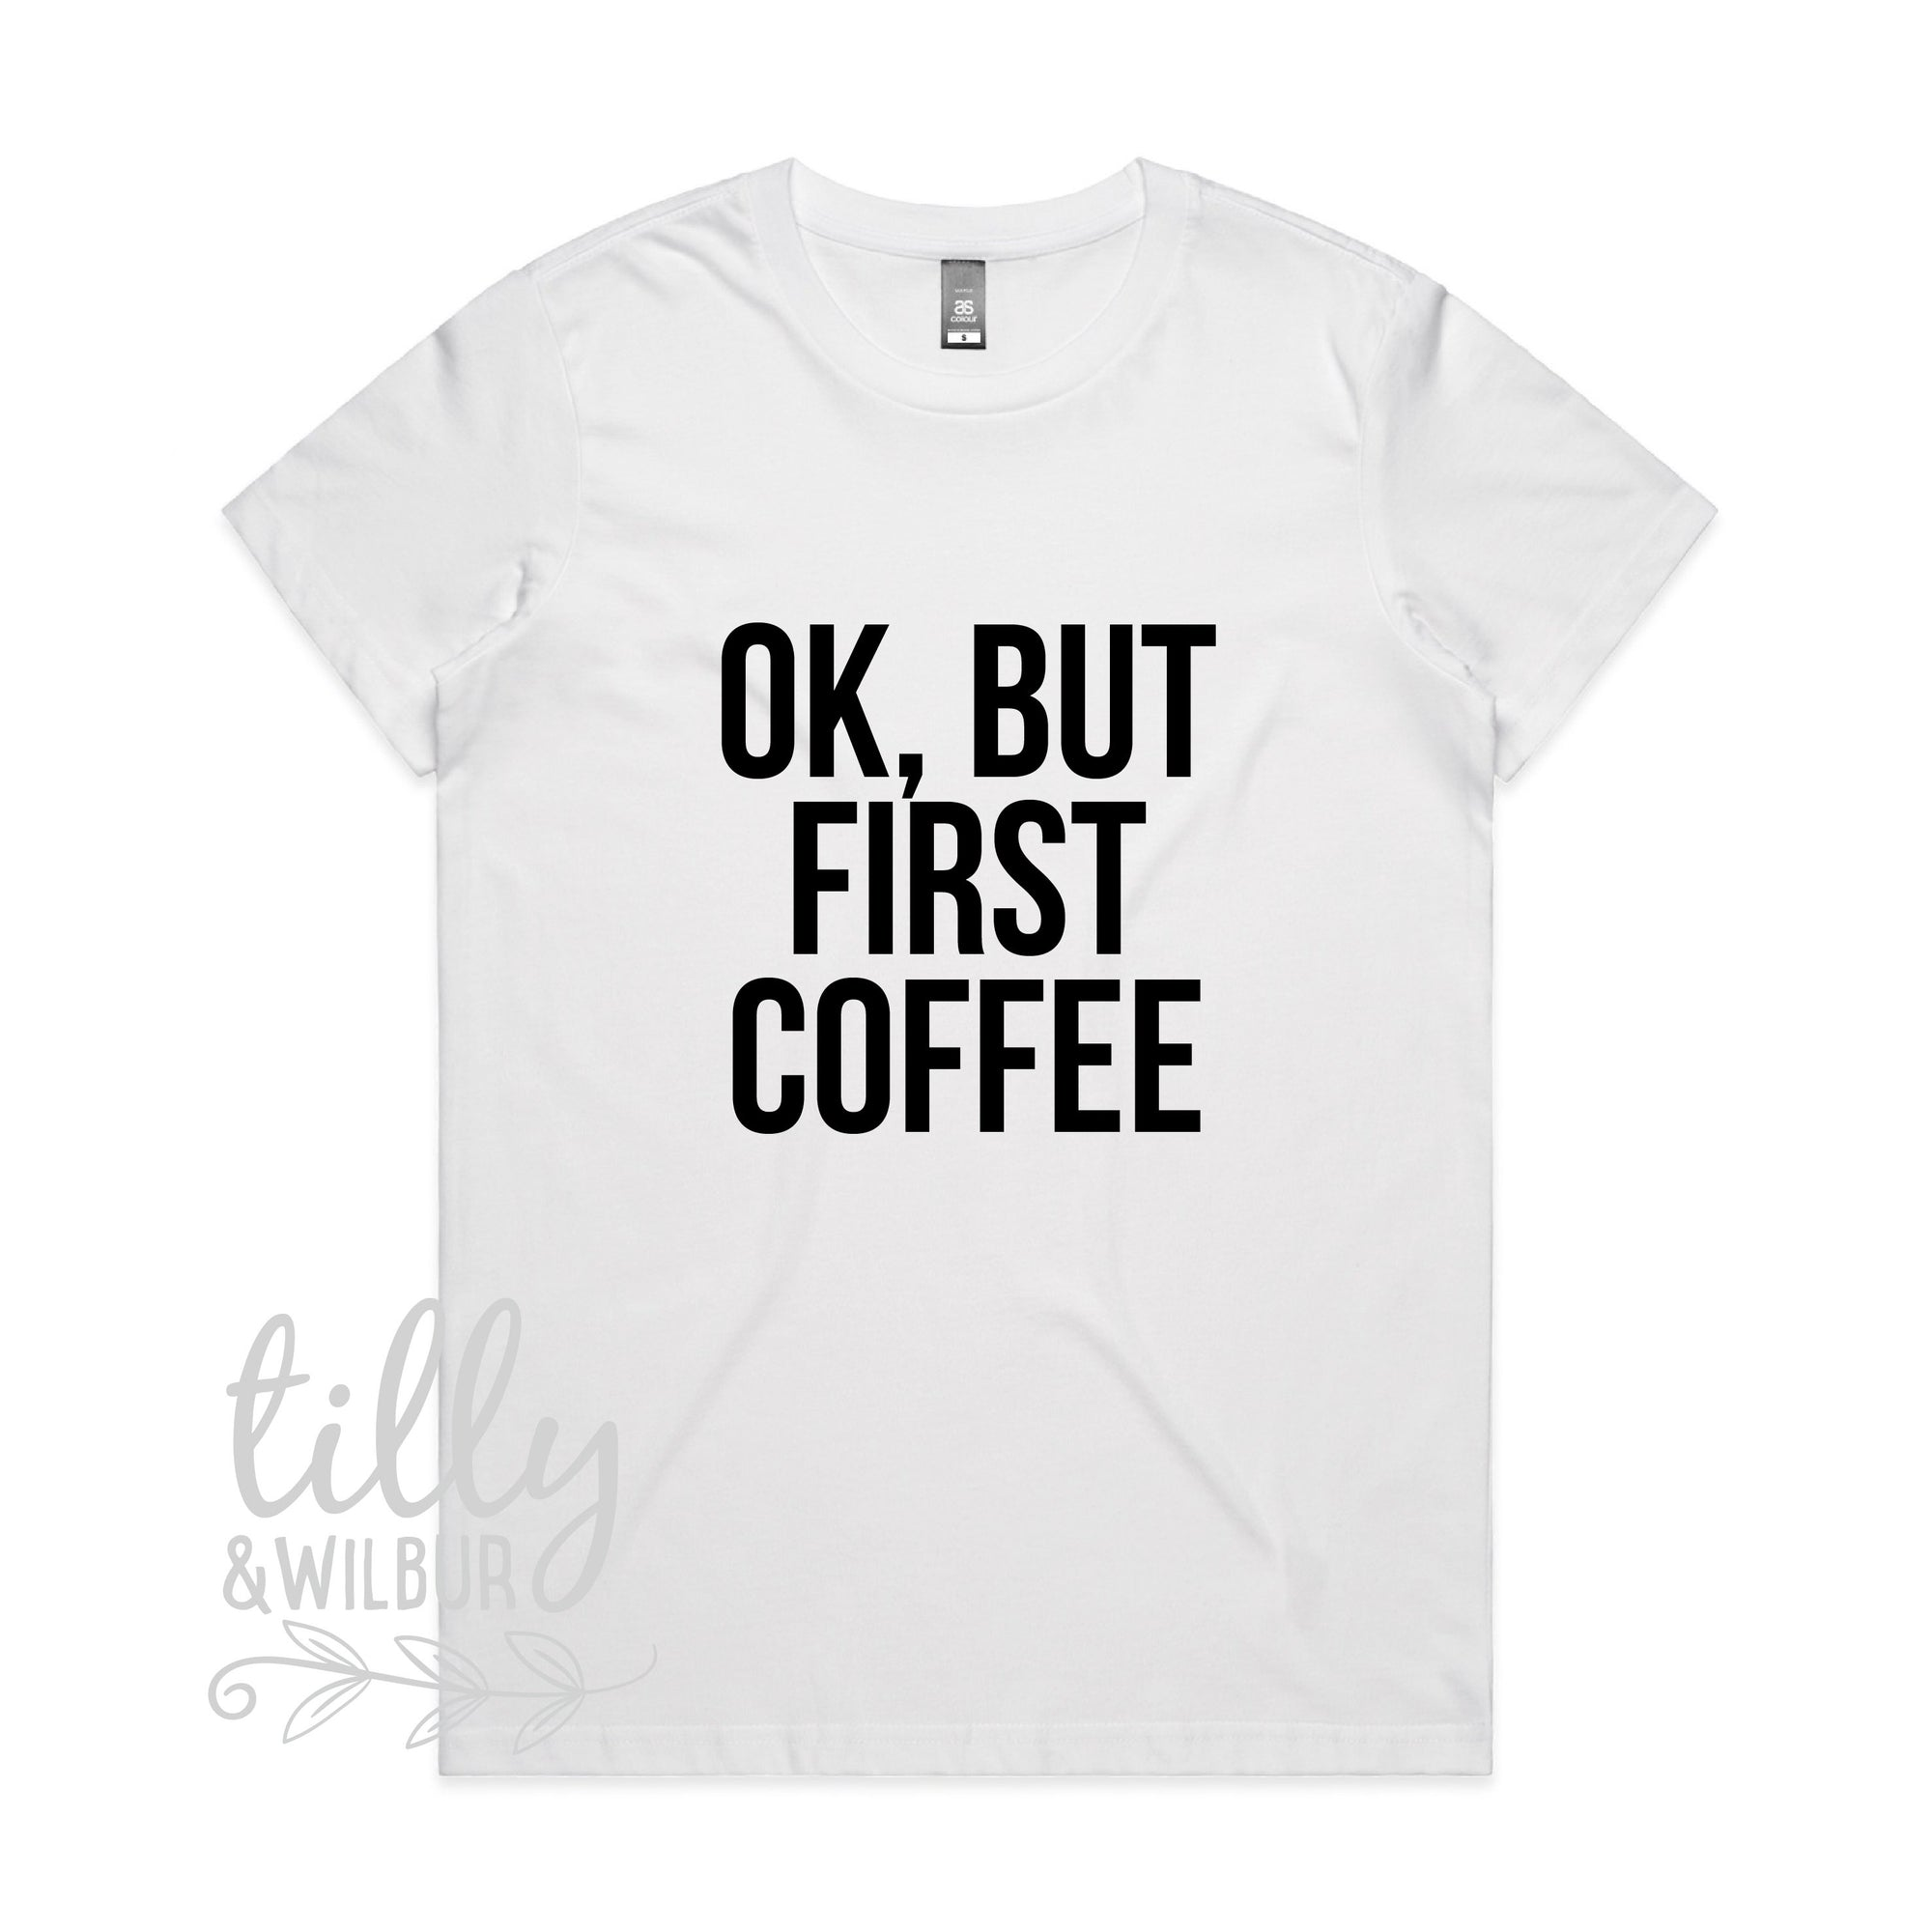 OK But First Coffee Women's T-Shirt, But First Coffee Funny Tee, Mum Shirt, Mother's Day Gift, Coffee Lover, Caffeine Addict, OK But First